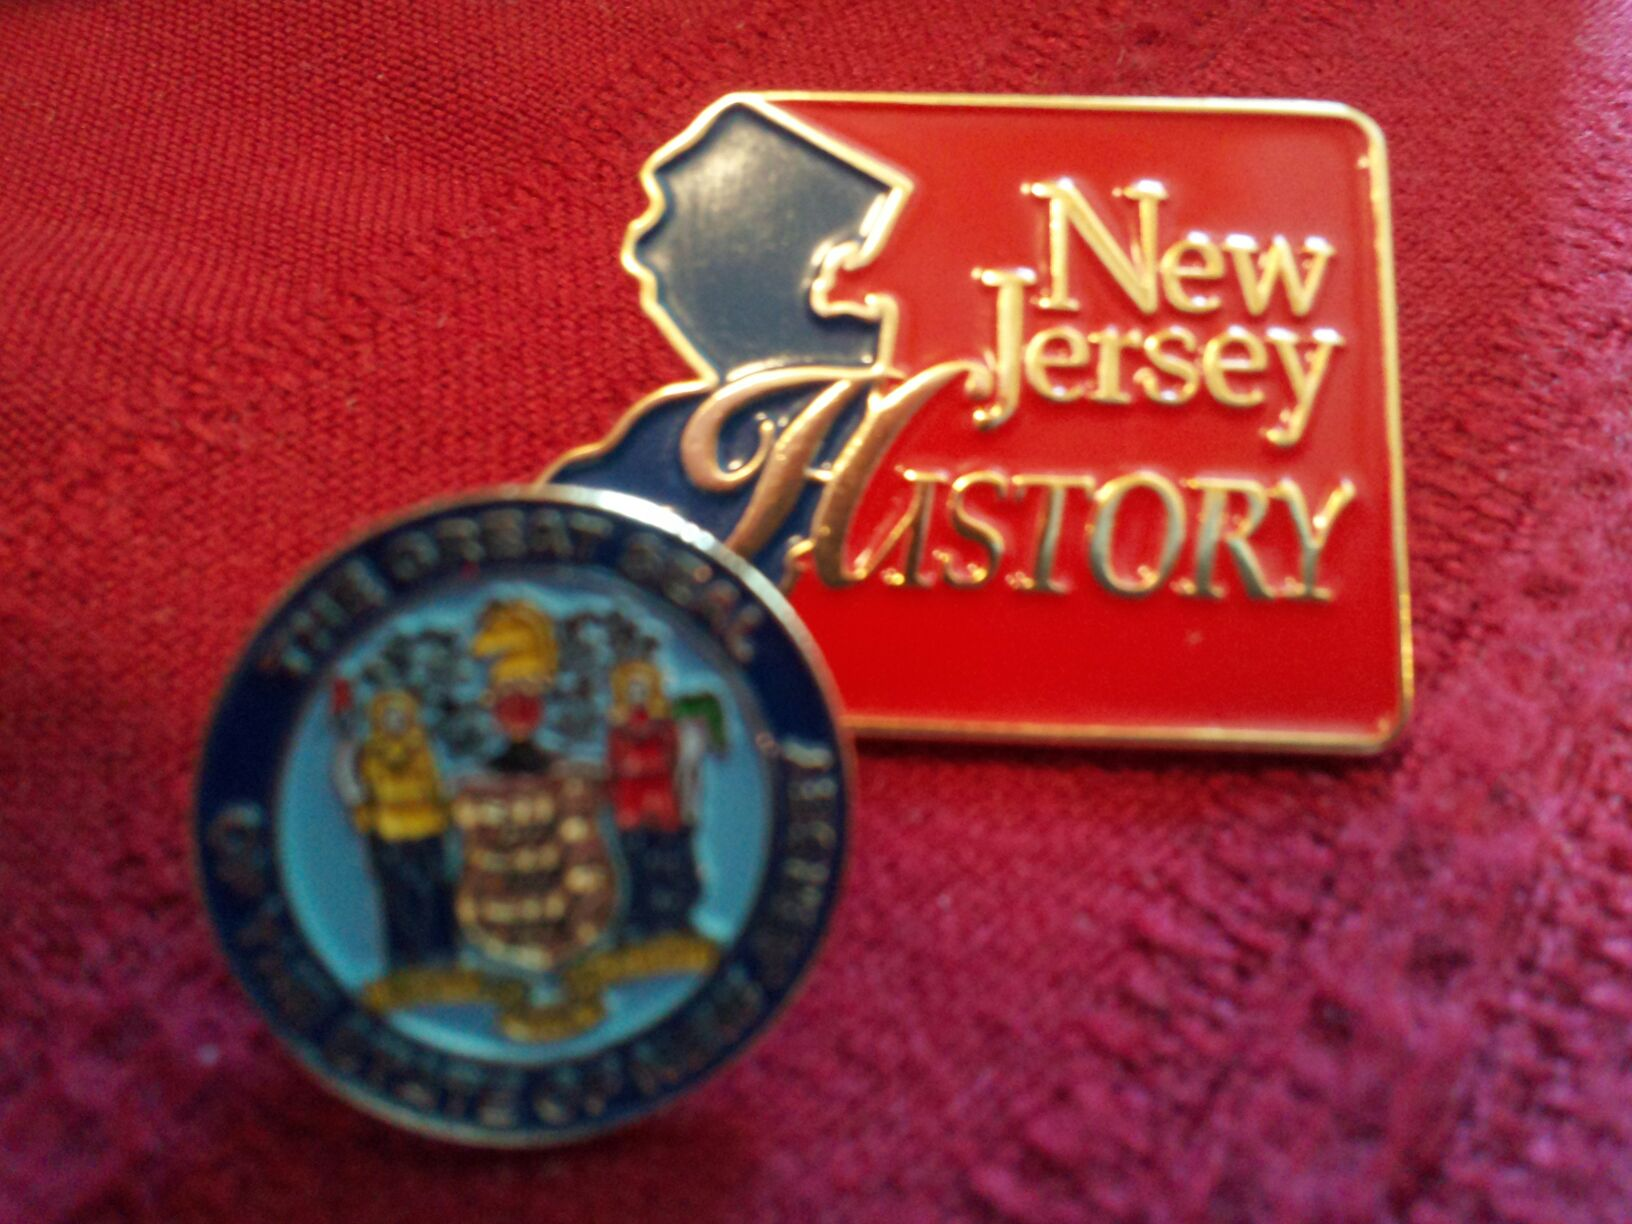 Support NJ History!